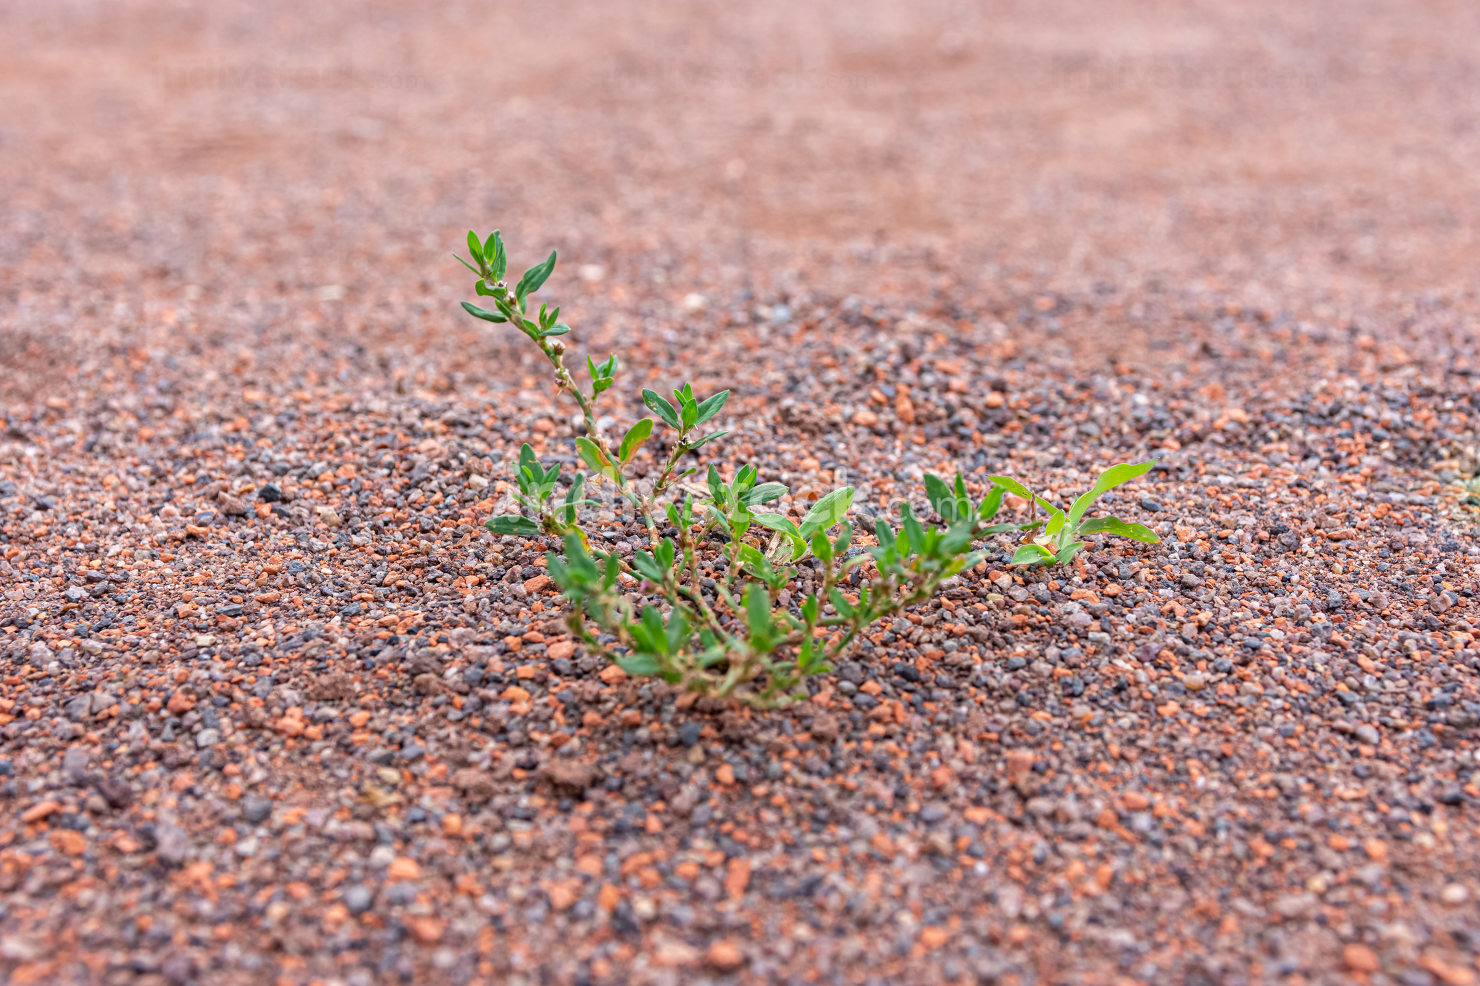 Leafy green weed growing in fine gravel